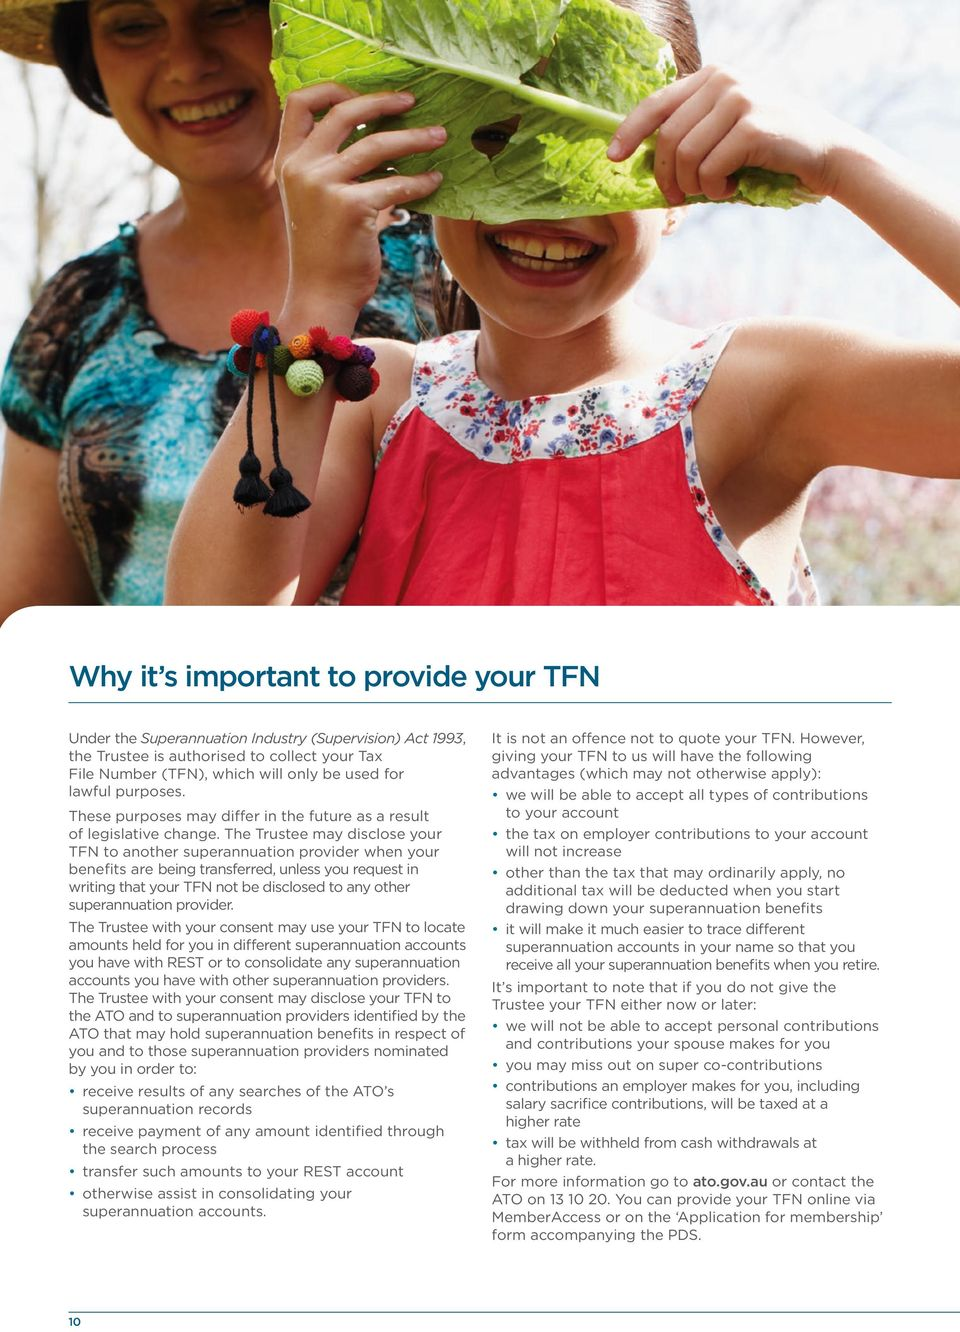 The Trustee may disclose your TFN to another superannuation provider when your benefits are being transferred, unless you request in writing that your TFN not be disclosed to any other superannuation